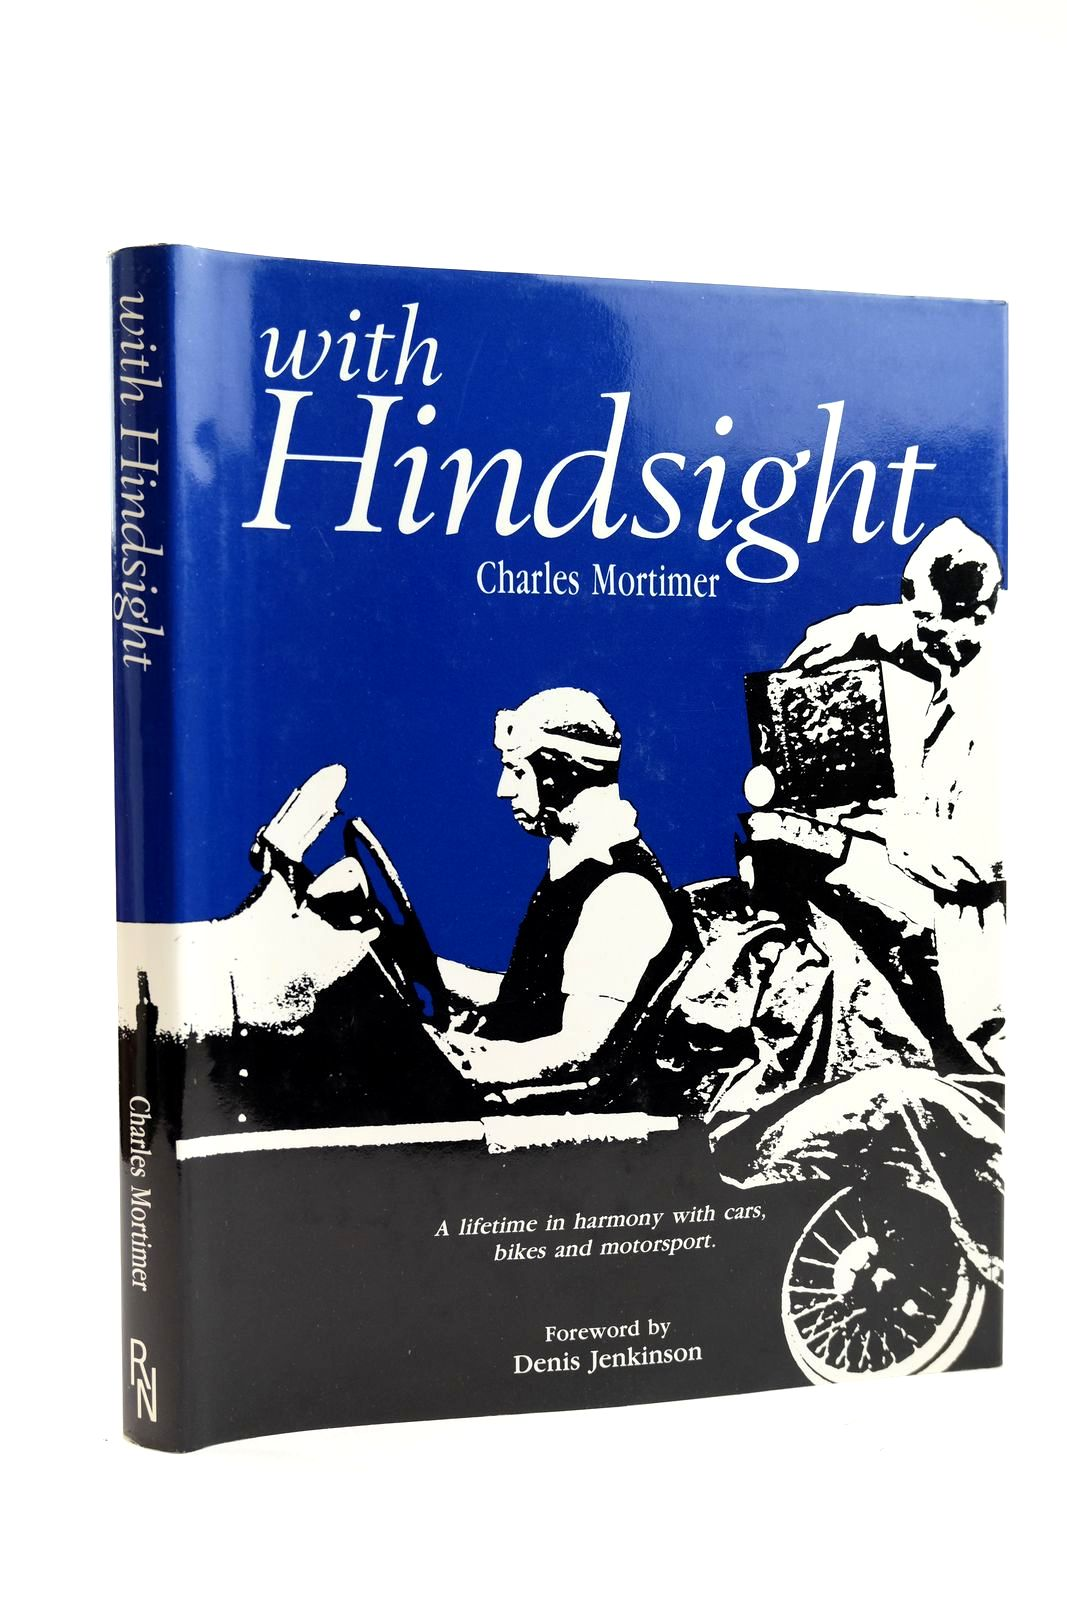 Photo of WITH HINDSIGHT written by Mortimer, Charles published by Richard Netherwood Limited (STOCK CODE: 2131817)  for sale by Stella & Rose's Books